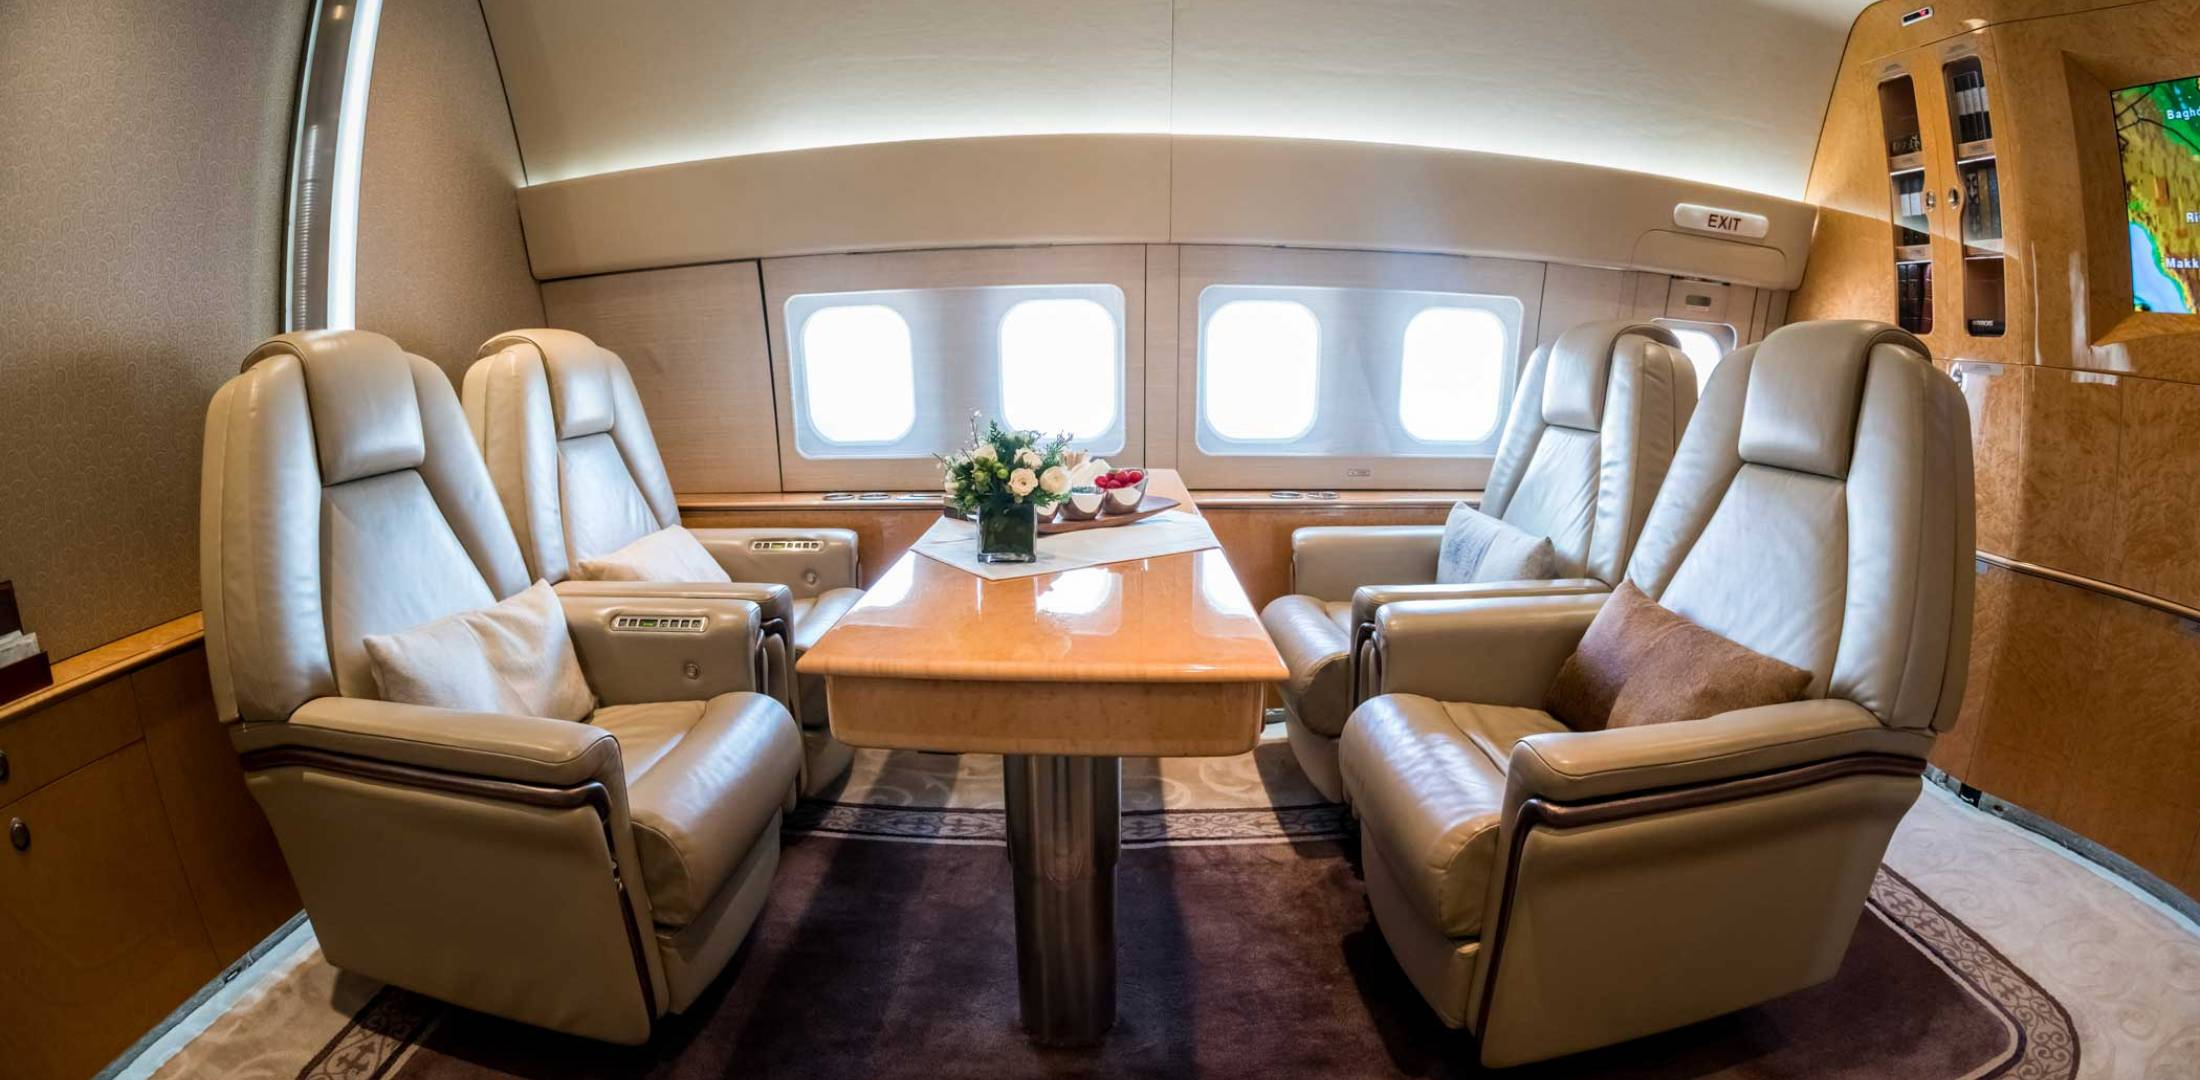 767 interior by Comlux